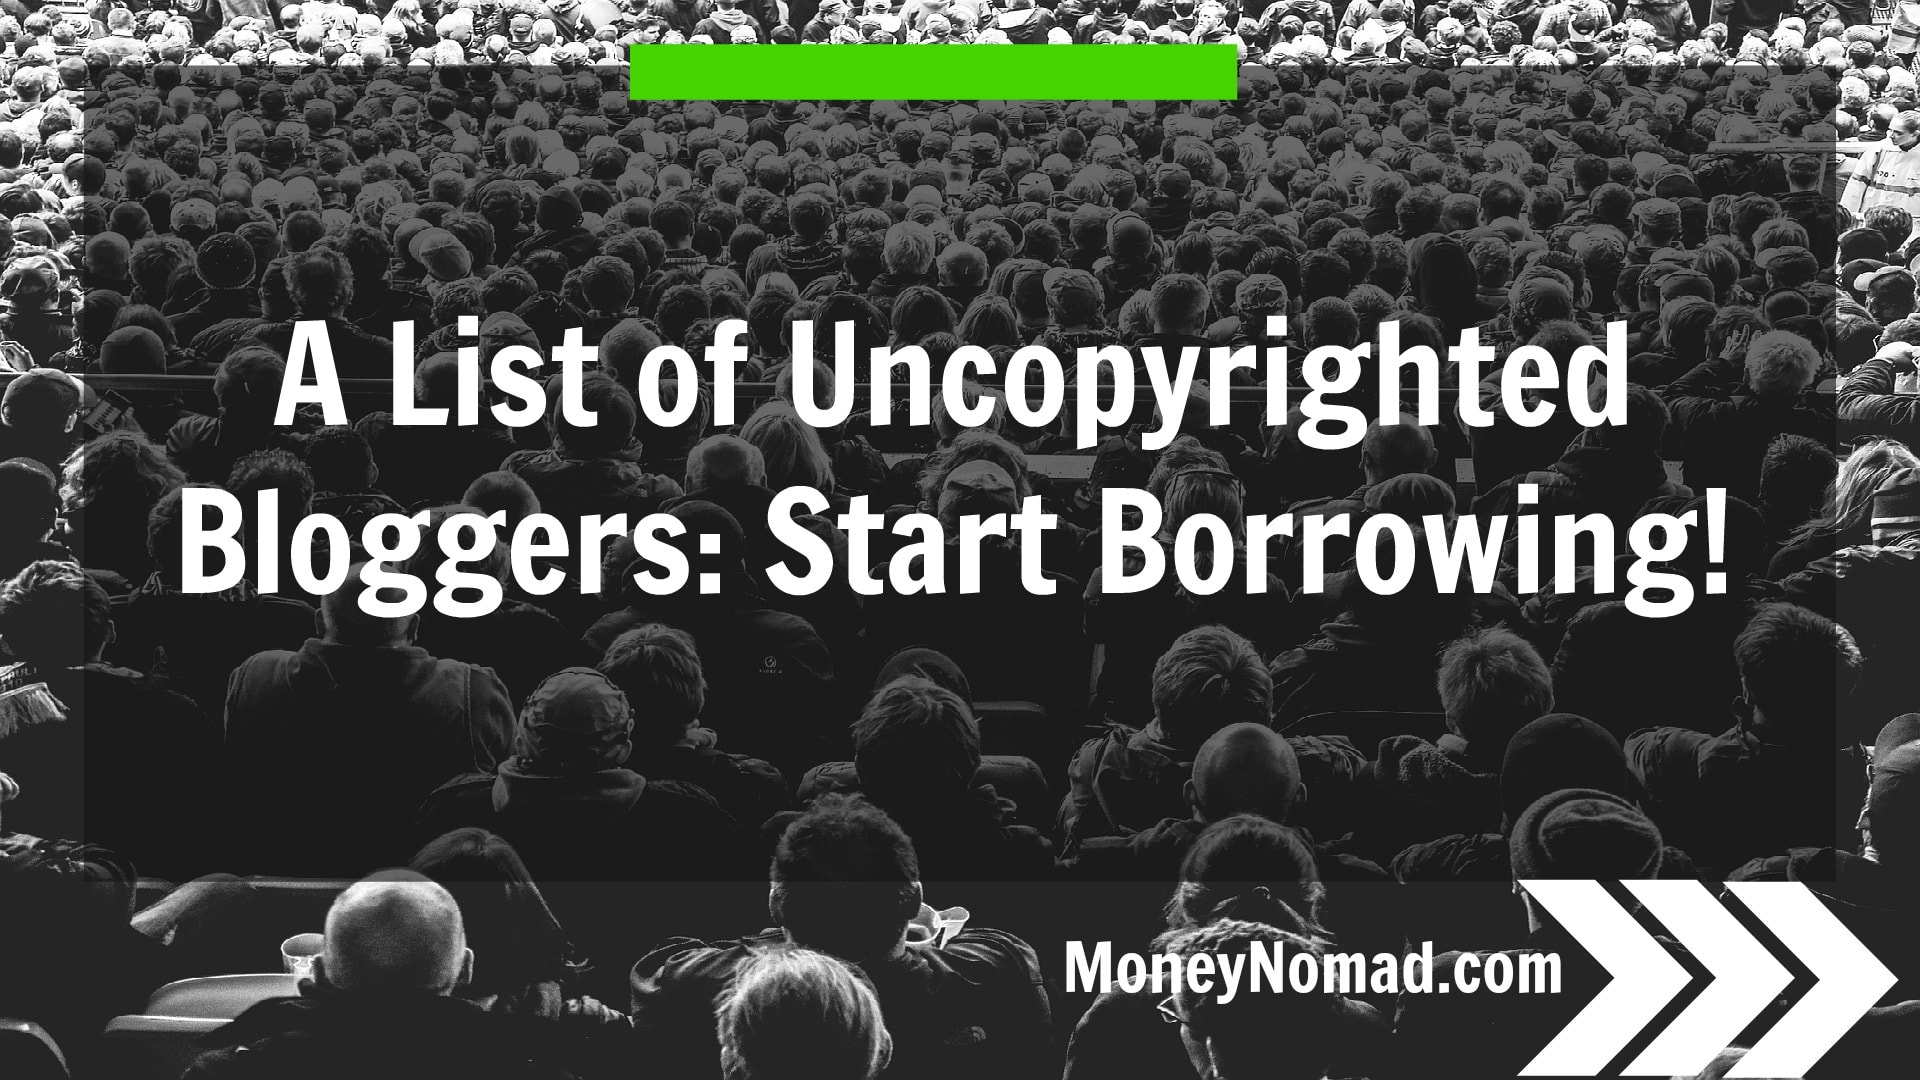 A List of Uncopyrighted Bloggers